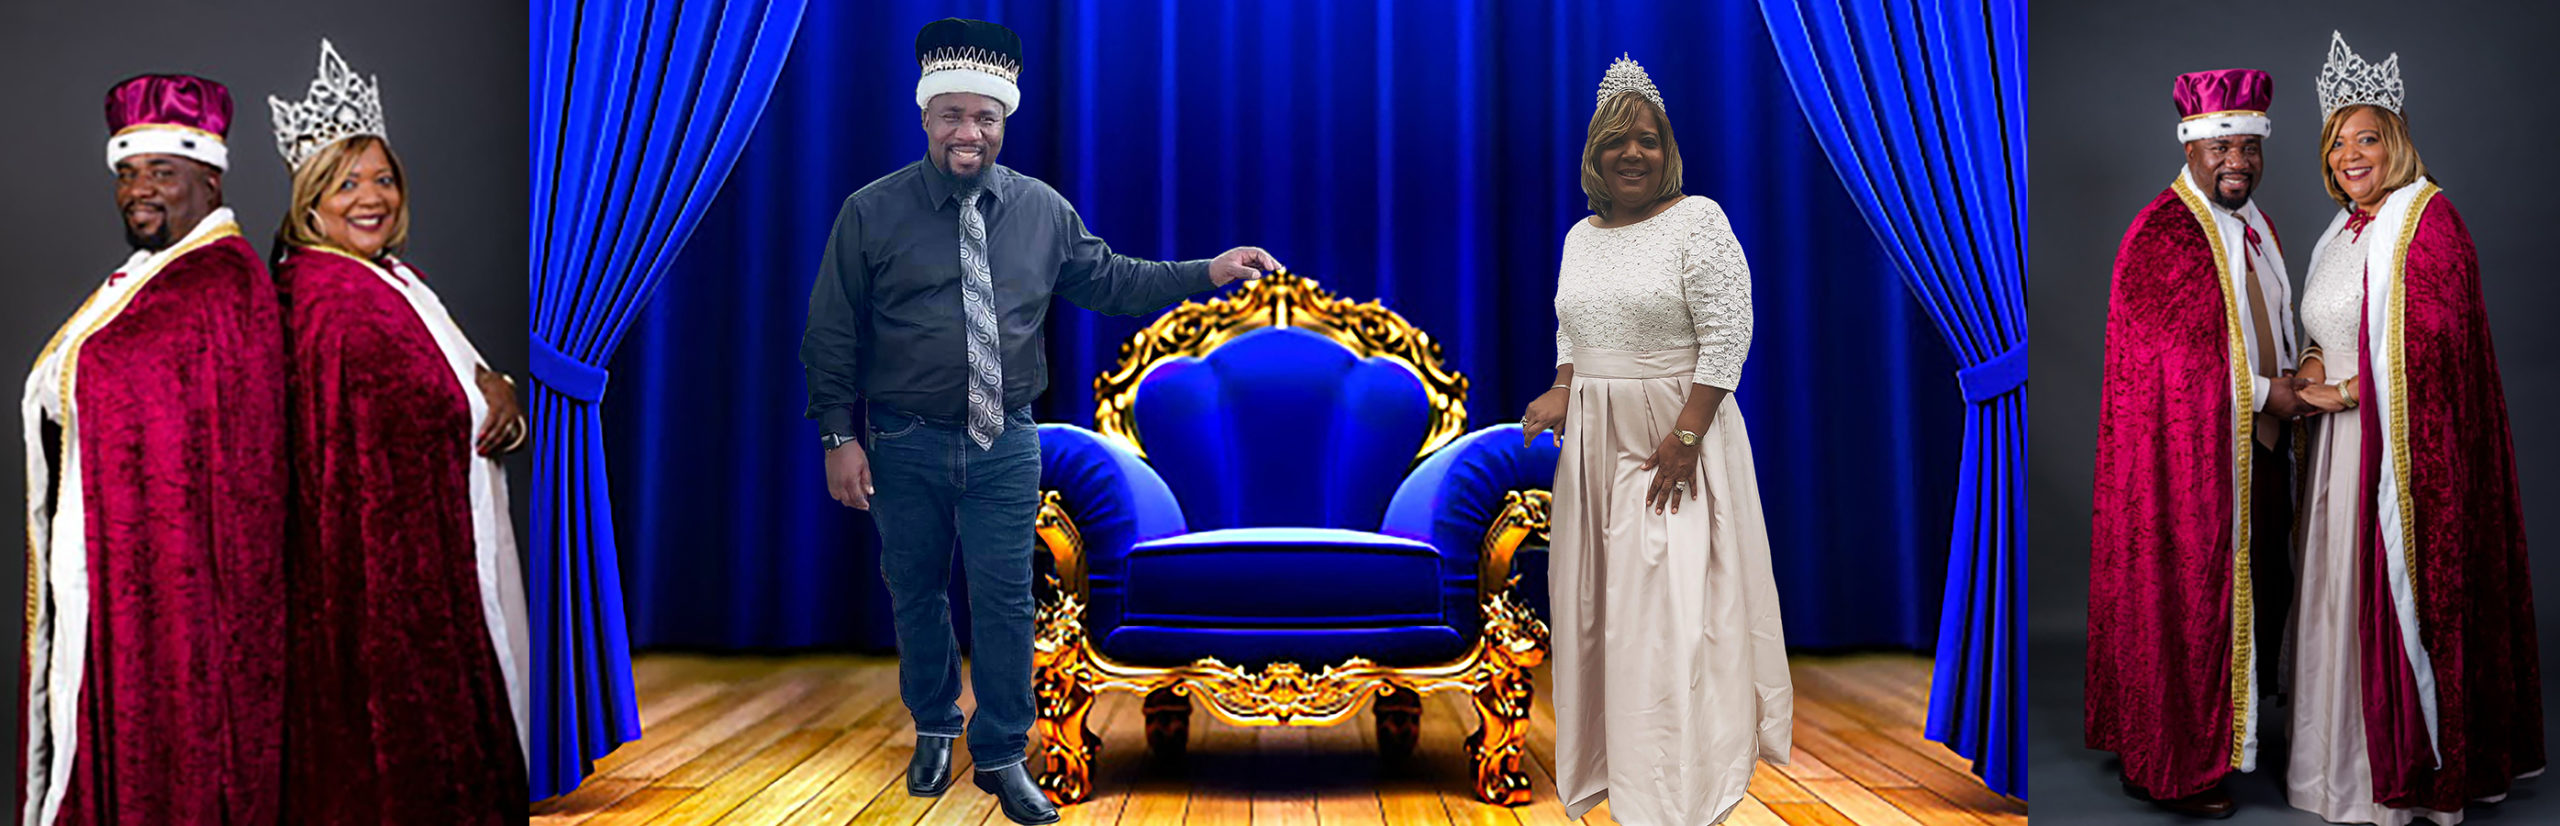 2020 King Roy Johnson Jr & Queen Adrienne Hal